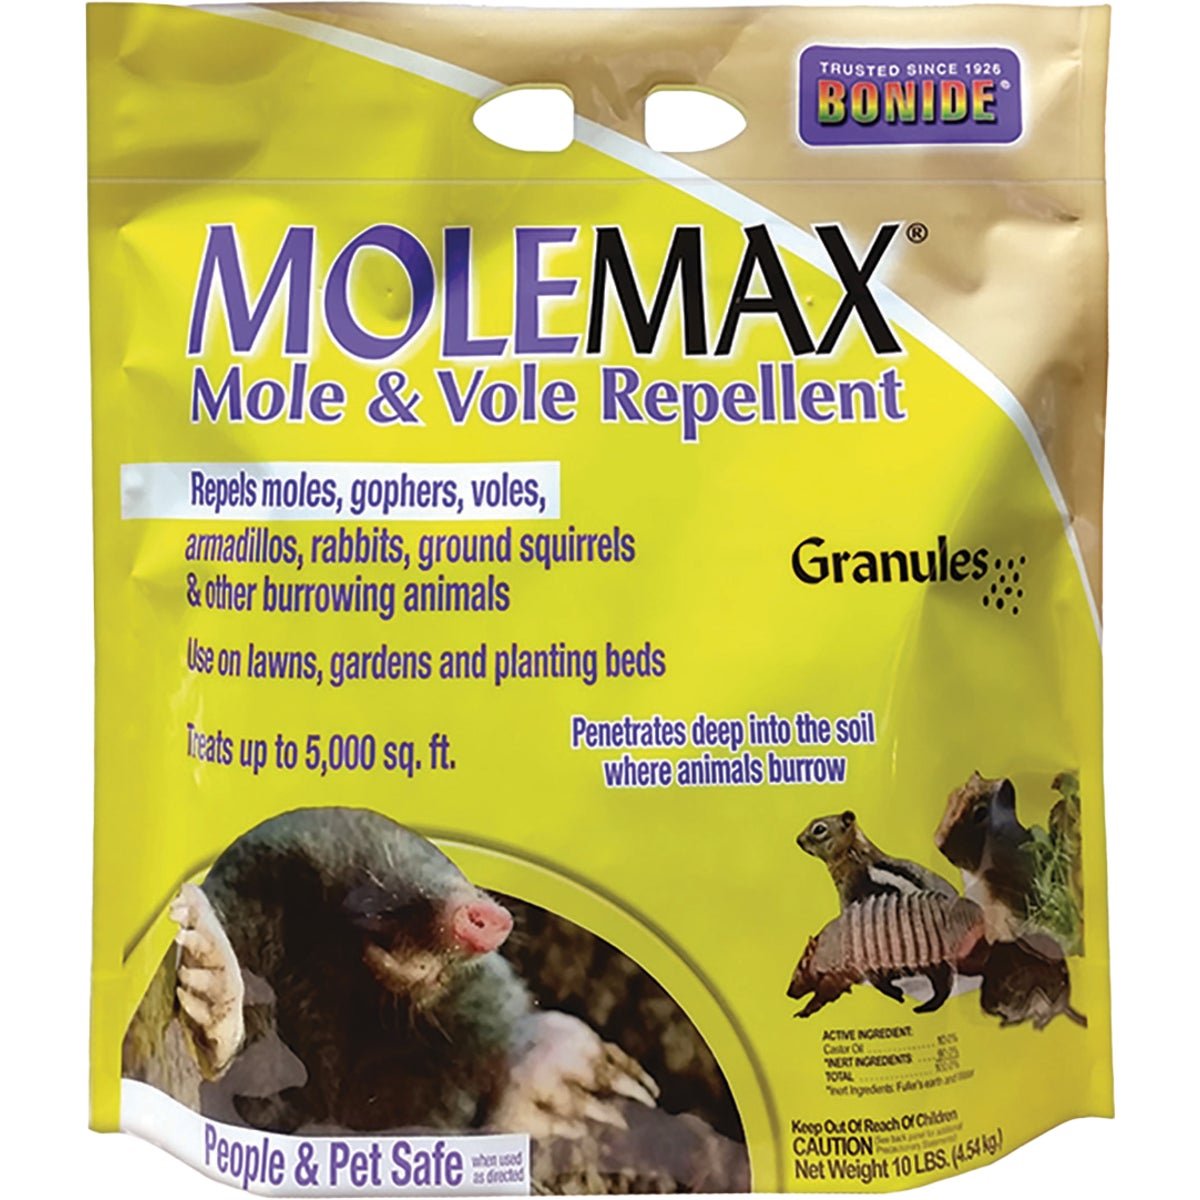 10LB GRAN MOLE REPELLENT